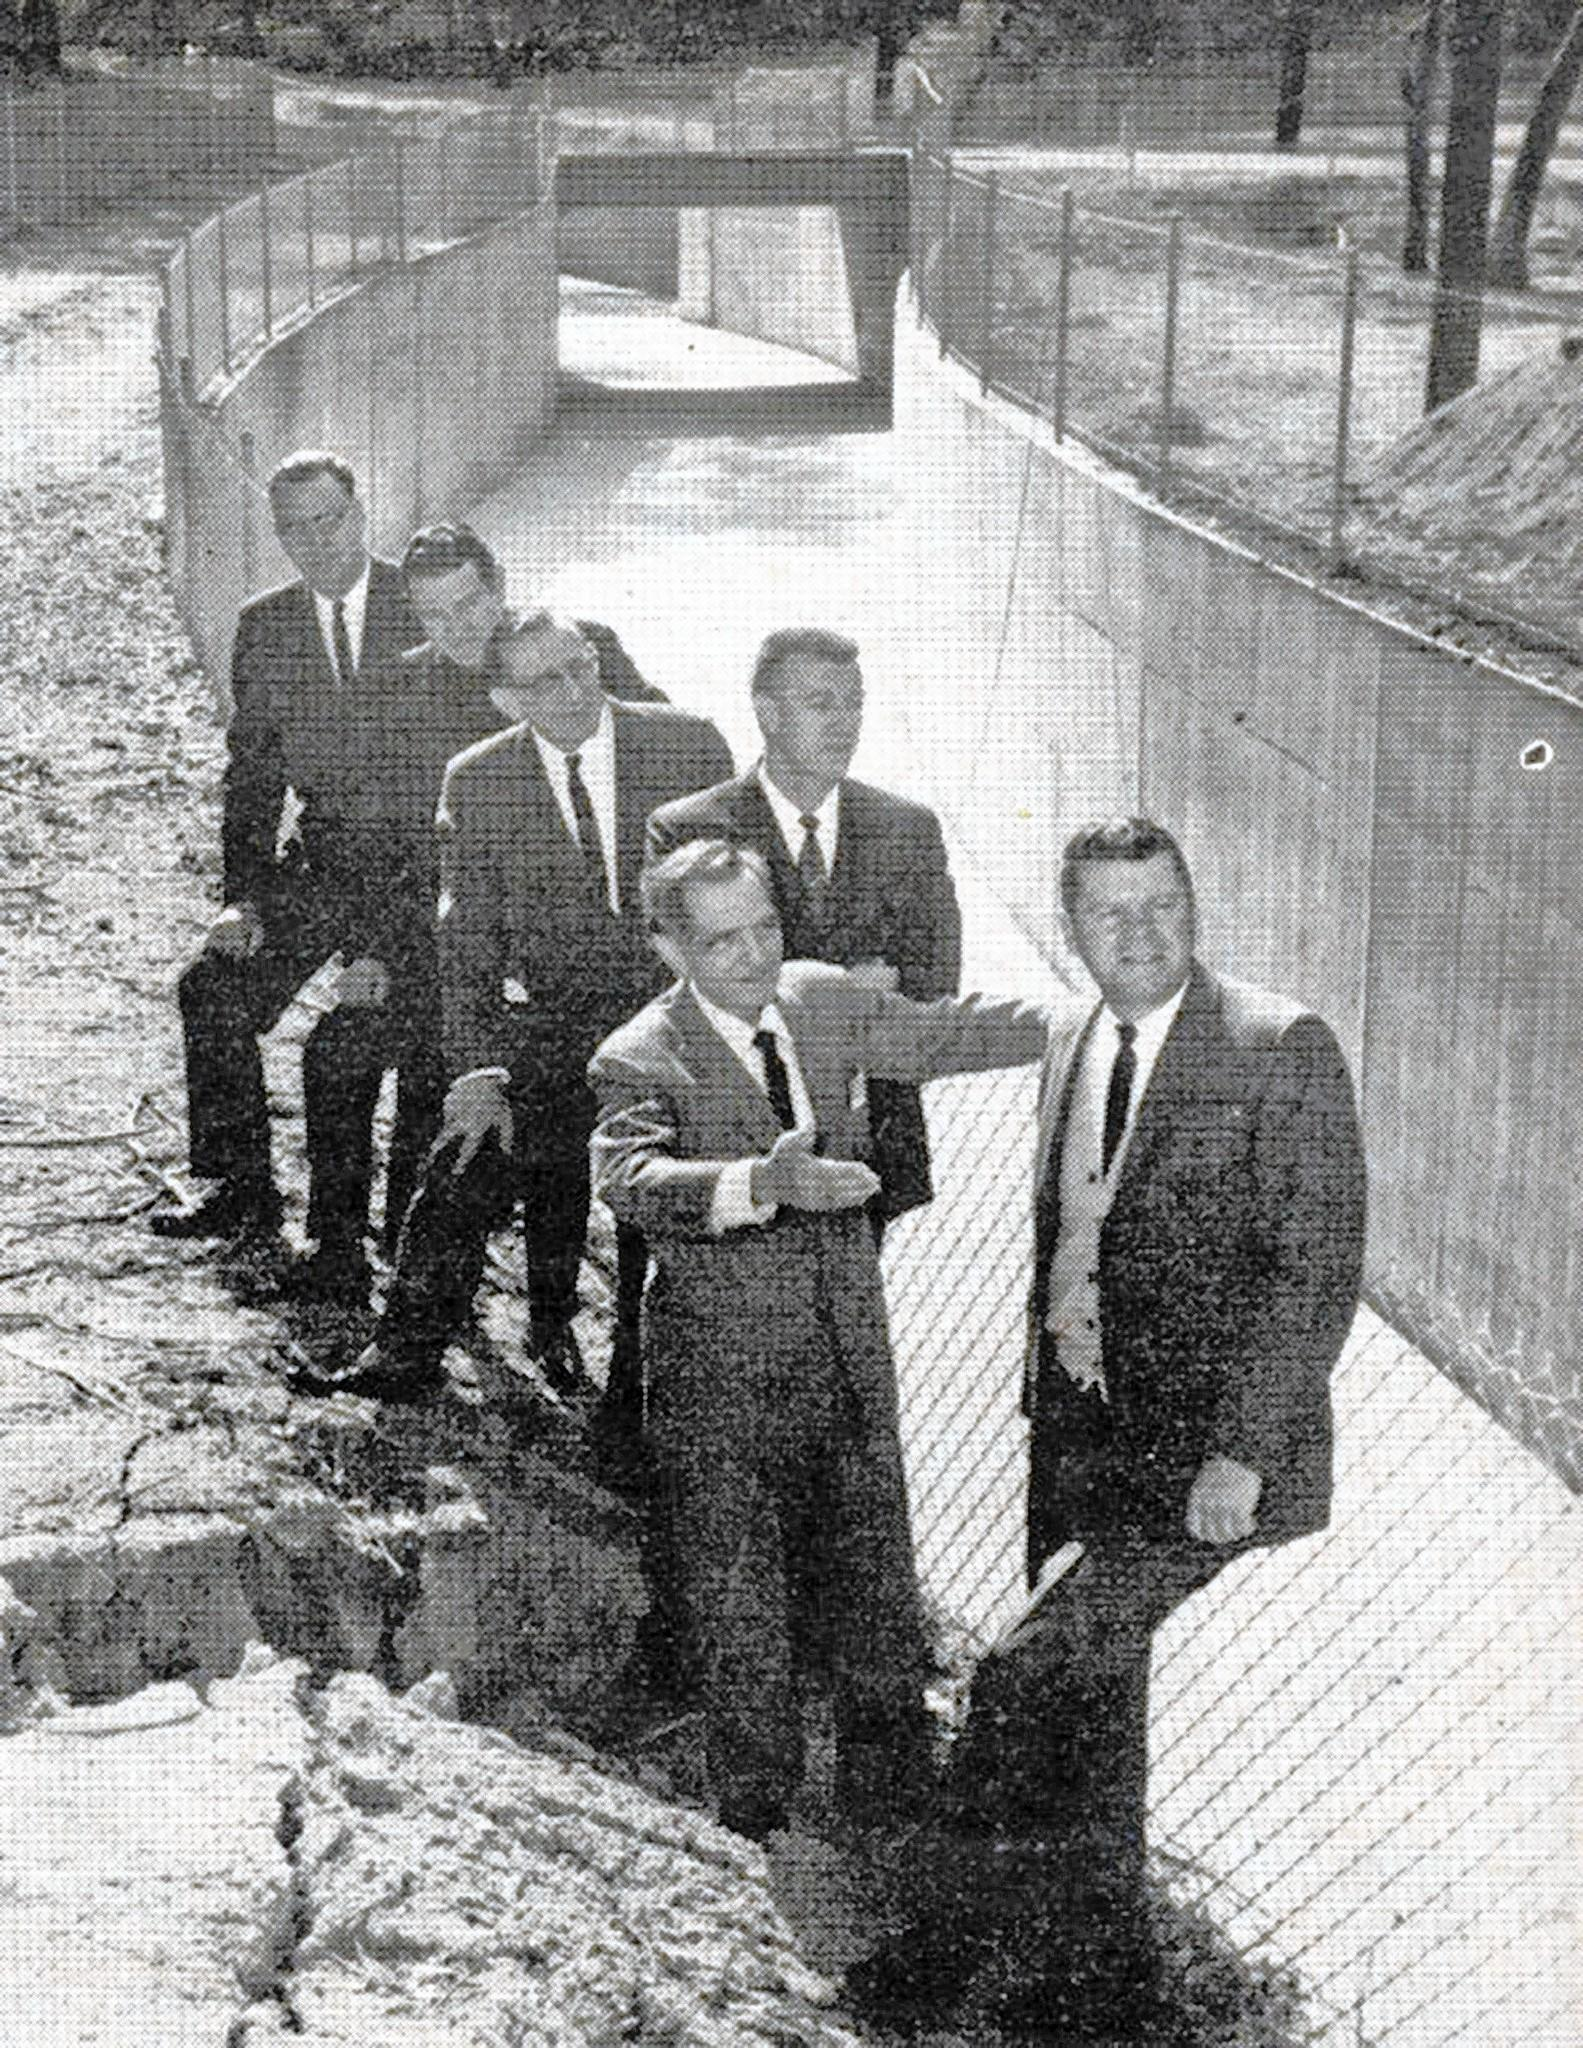 La Cañada resident Warren M. Dorn, front, then a member of the Los Angeles County Board of Supervisors, in the spring of 1964 led a group of civic and governmental dignitaries on an inspection tour of the Flint Canyon Channel, which had been improved from Woodleigh Lane to the Paradise Canyon Channel. The project, part of a countywide plan adopted by the board of supervisors in 1931, carried a price tag of nearly $350,000.